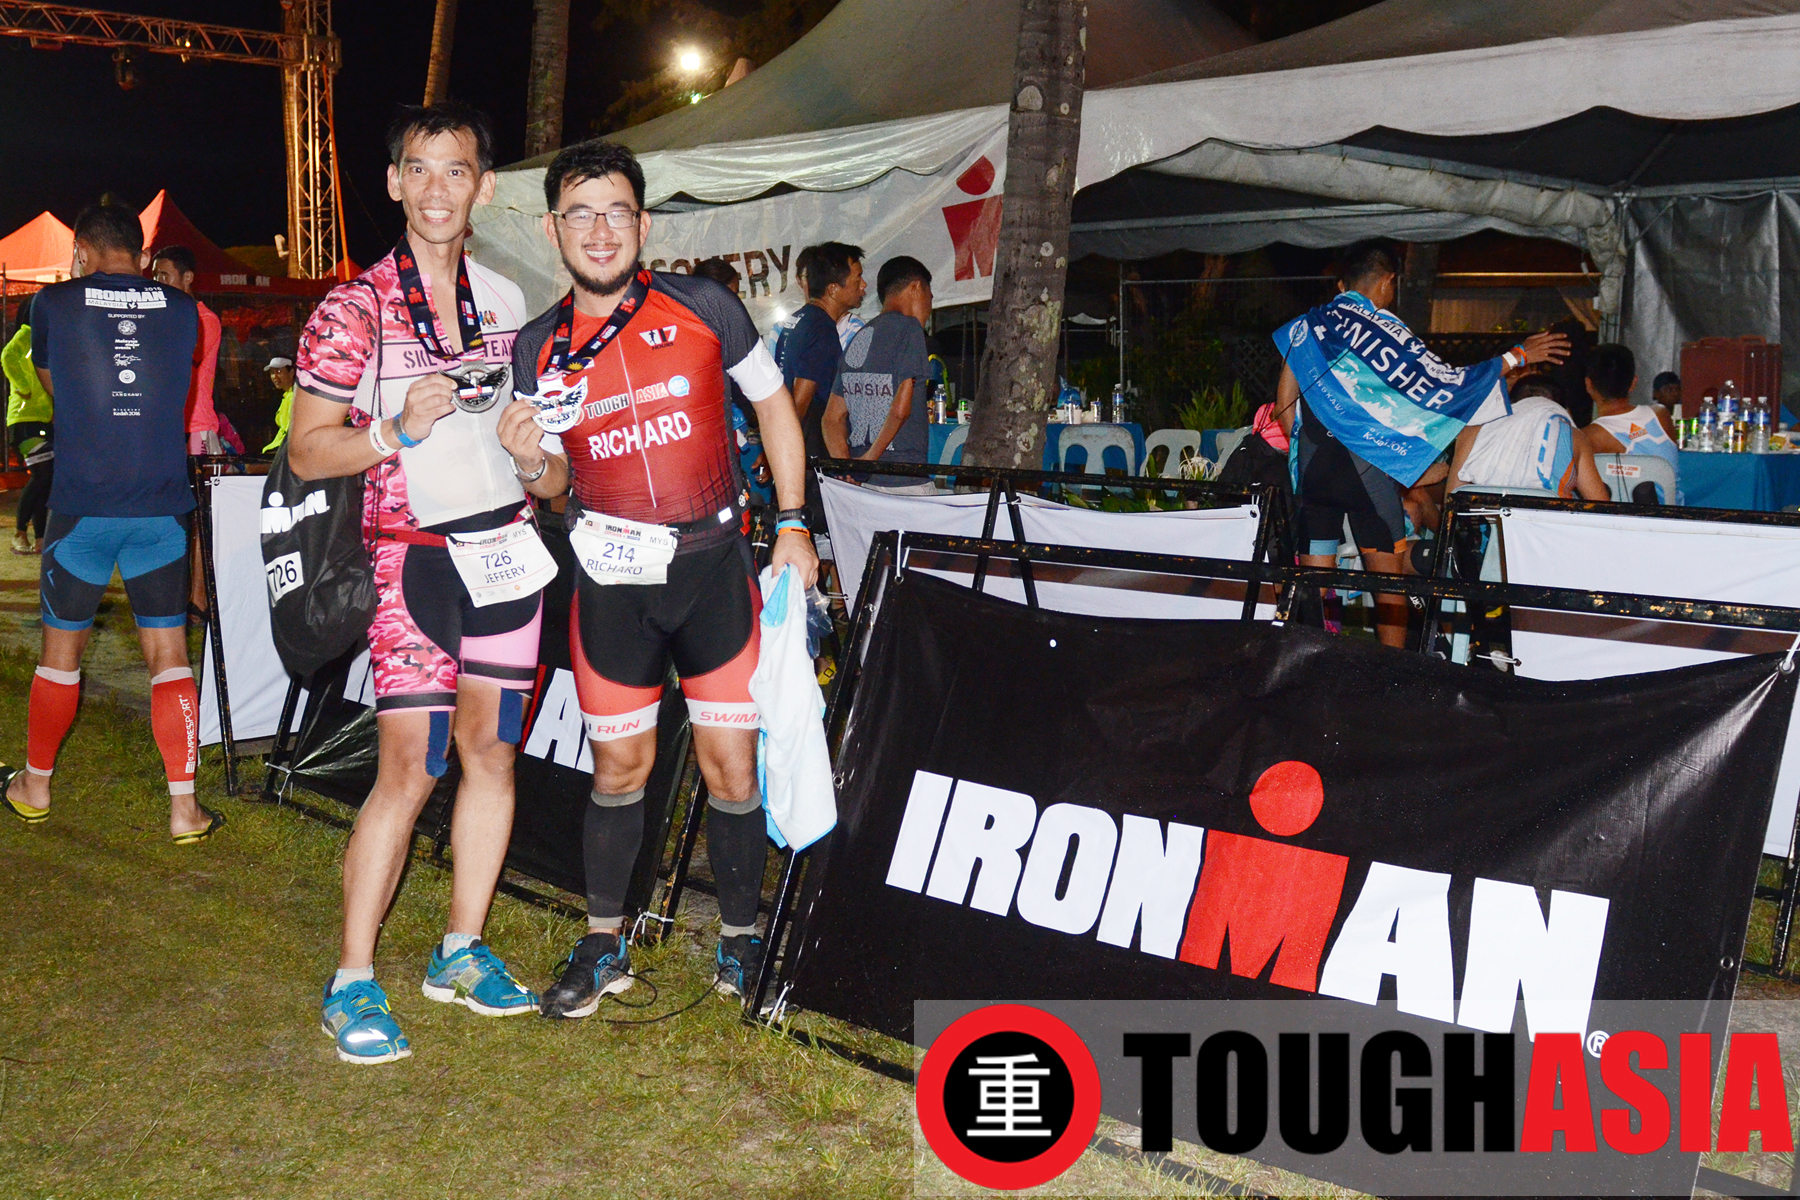 Training buddies Jeffery Lim(left) and Richard Lee celebrating their maiden Ironman race at Ironman Malaysia, Langkawi.